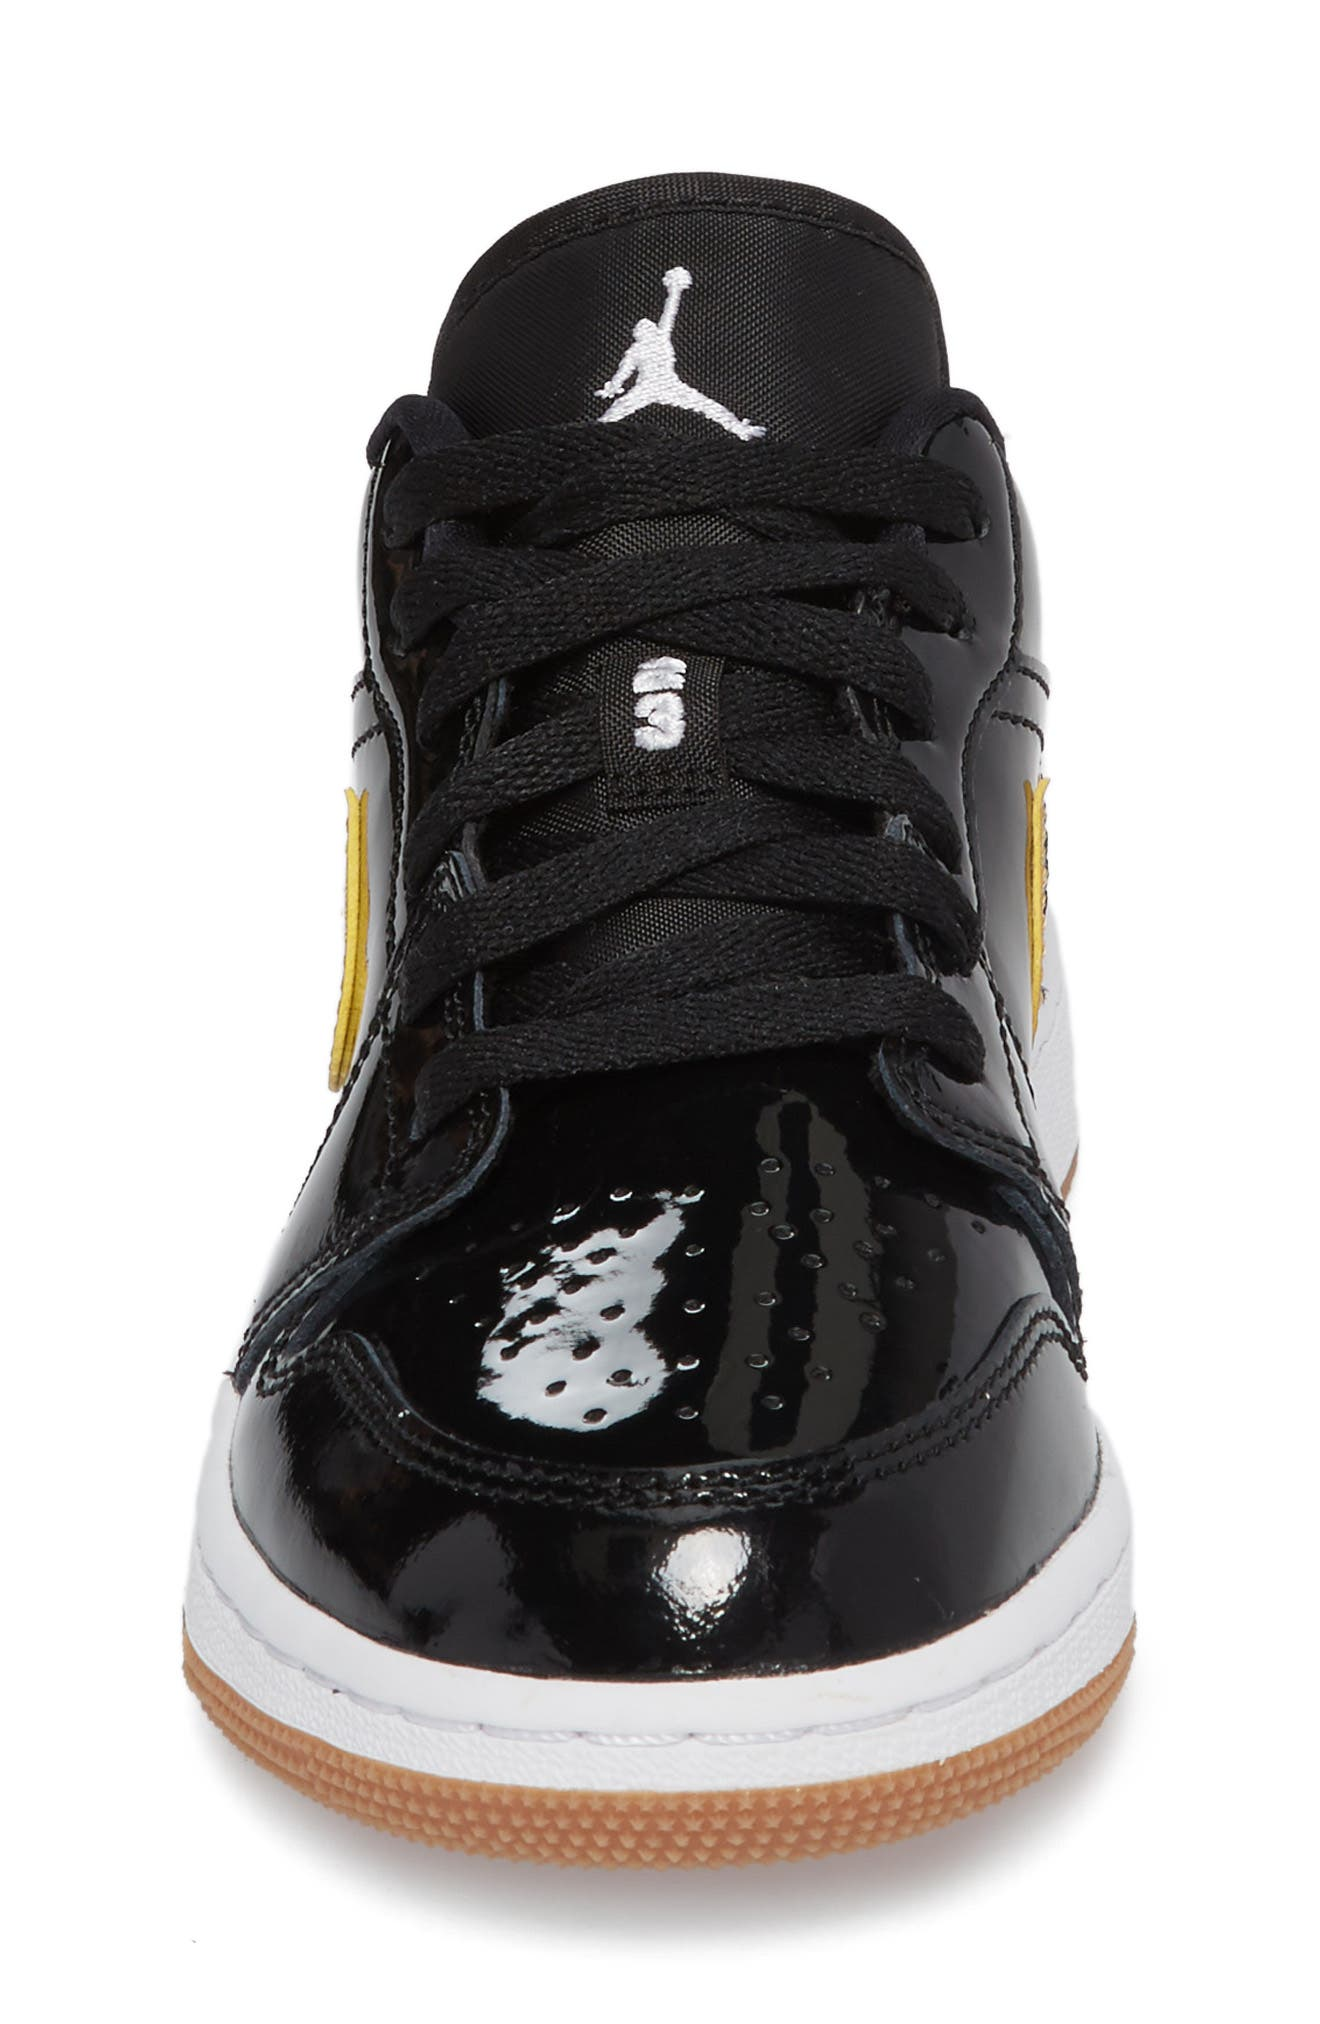 Nike 'Jordan 1 Low' Basketball Shoe,                             Alternate thumbnail 7, color,